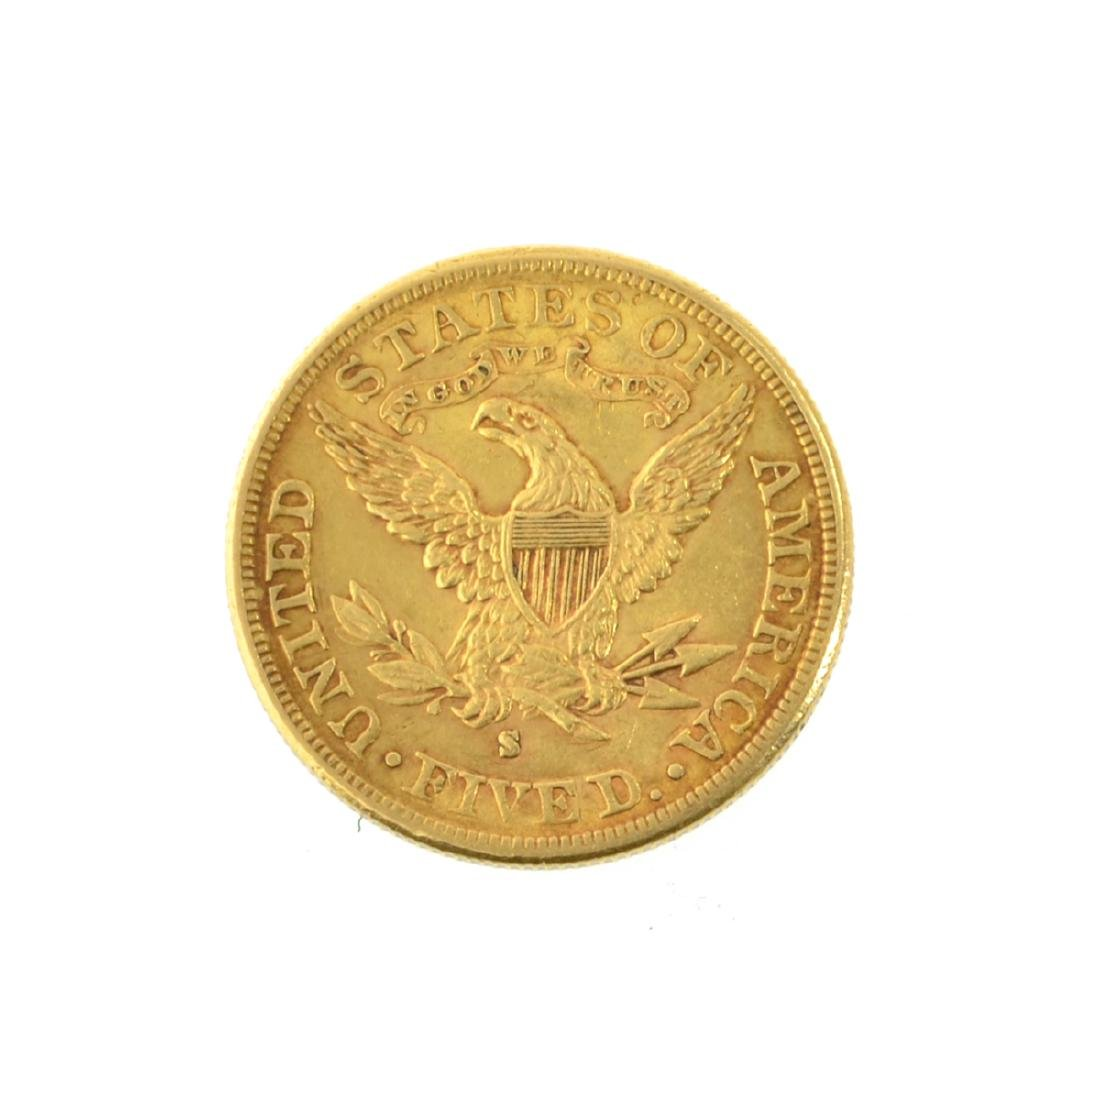 *1886-S $5 U.S. Liberty Head Gold Coin (PS-JWJ) - 2